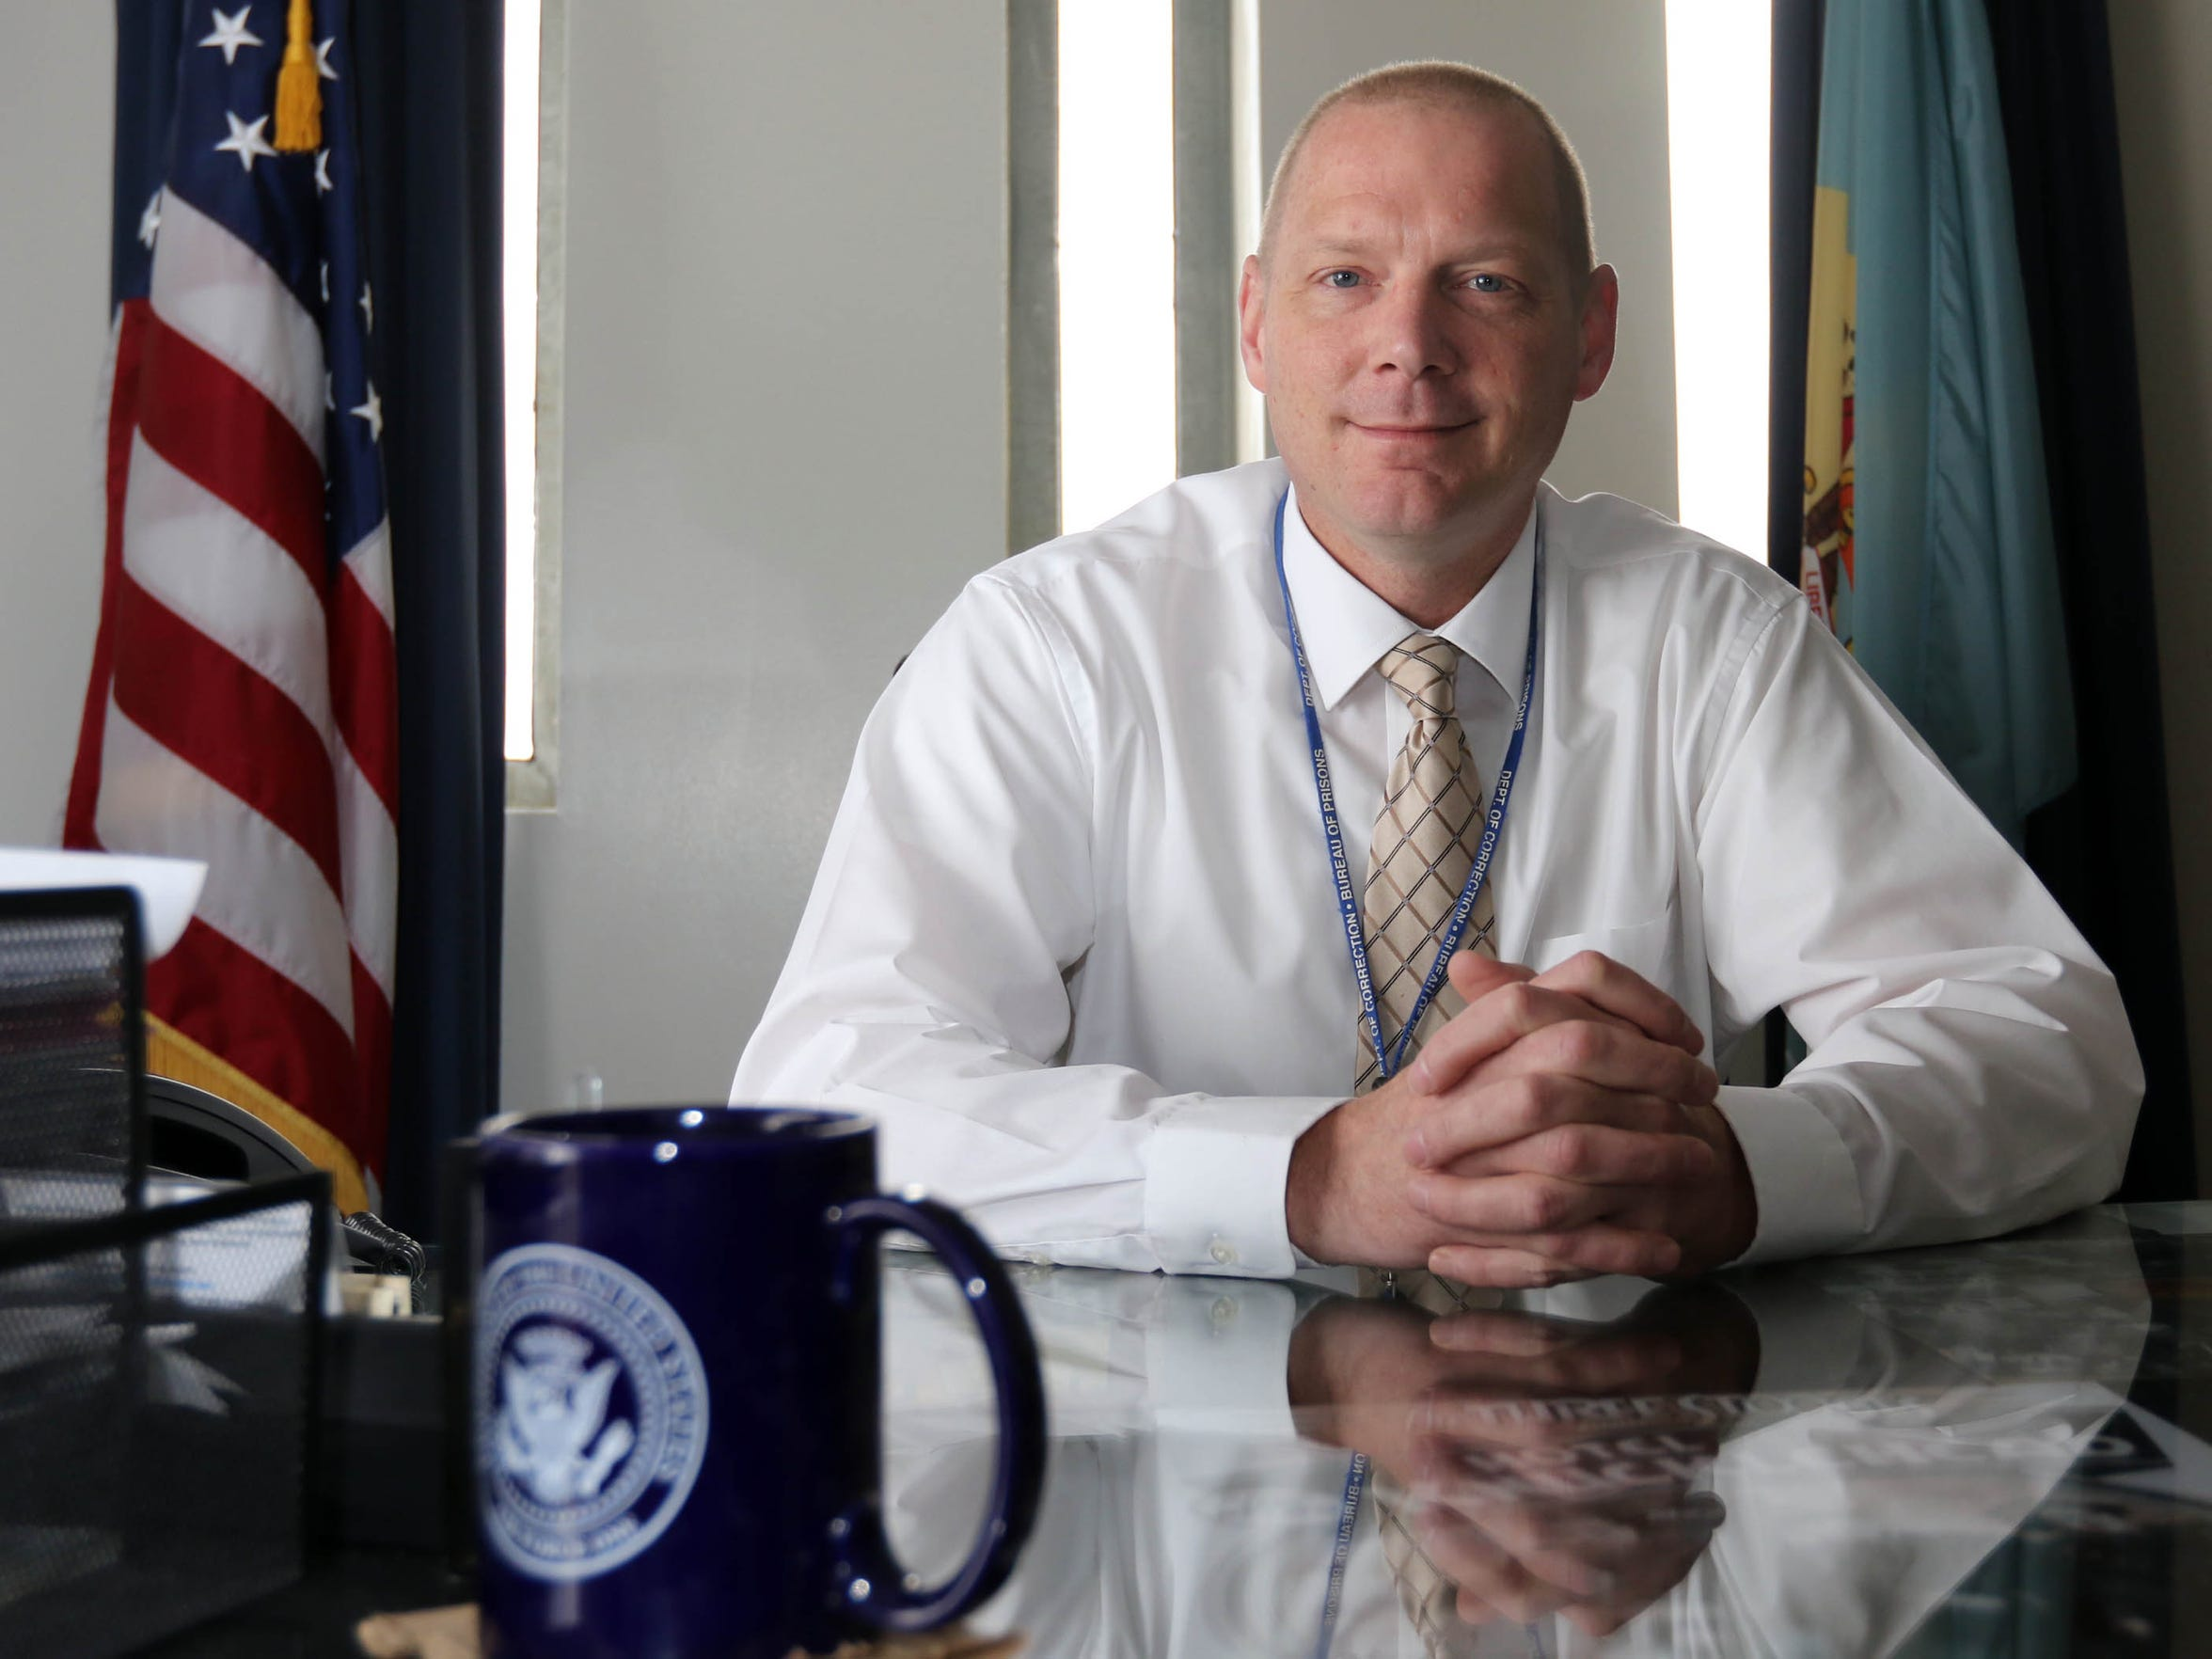 David Pierce, warden for James T. Vaughn Correctional Center, in shown in his office.